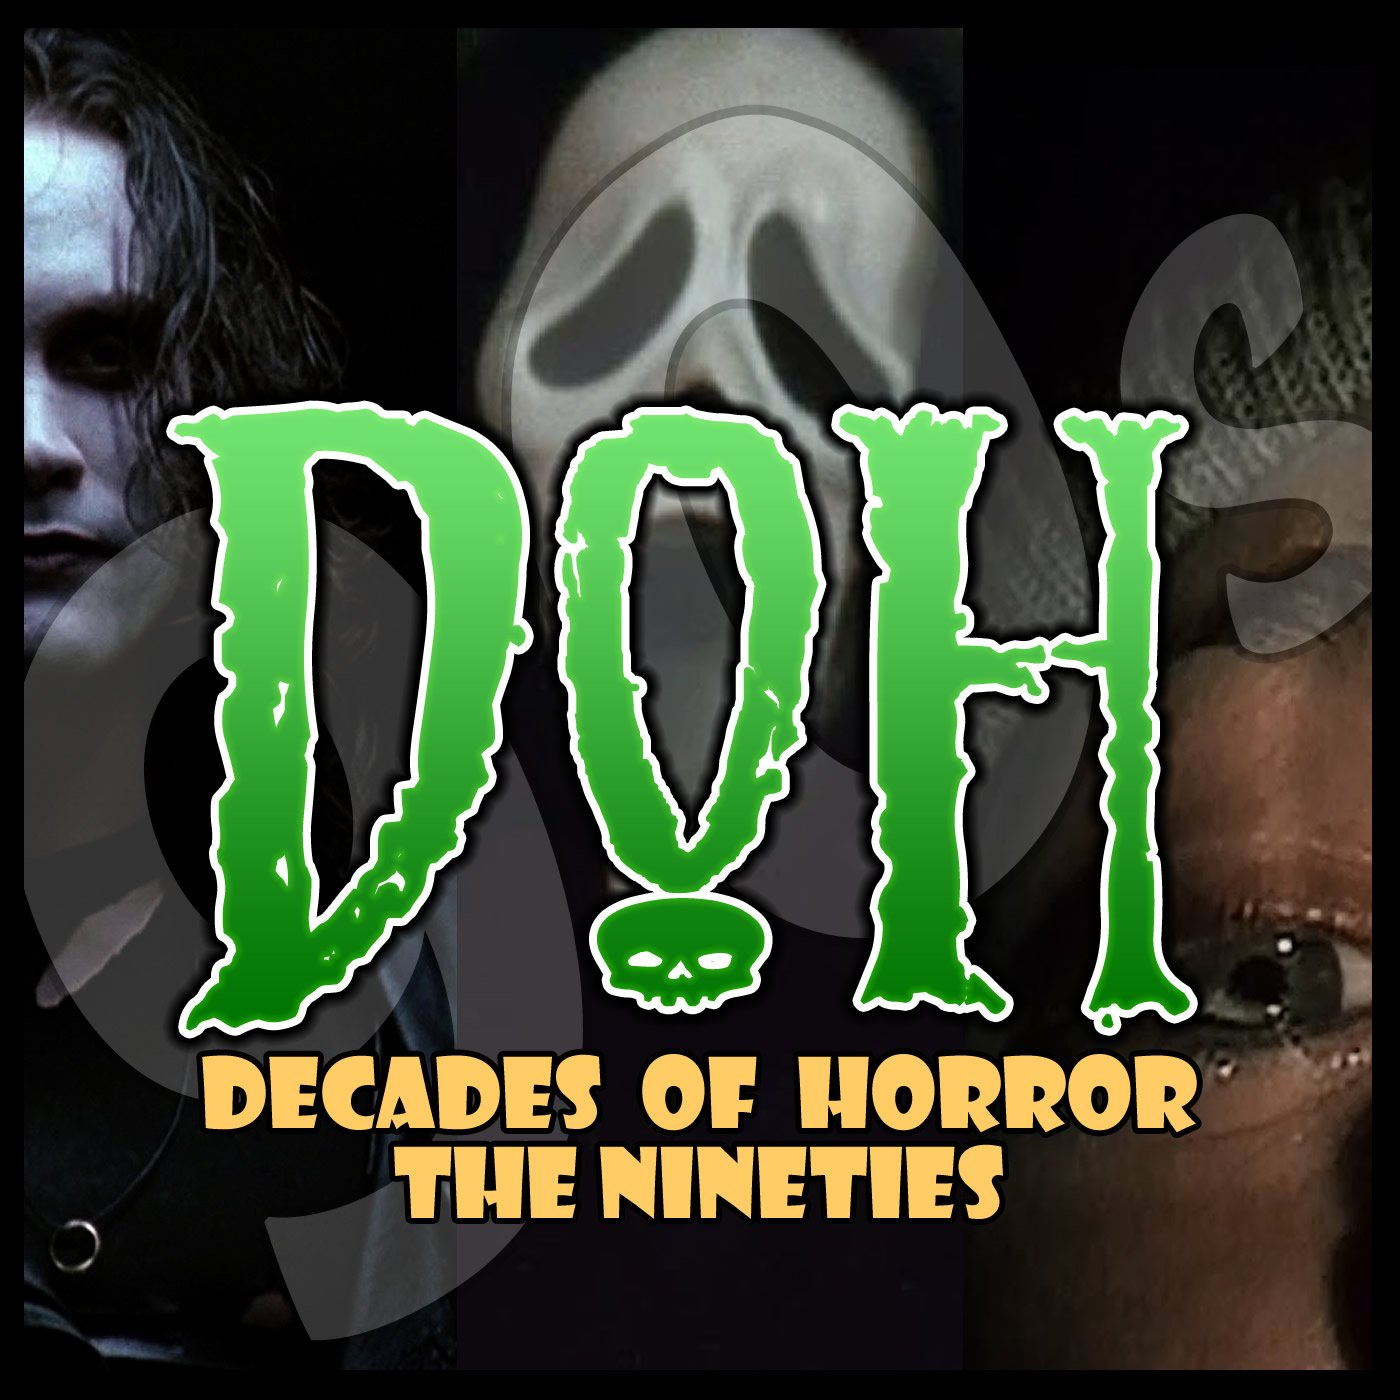 Decades of Horror 1990s